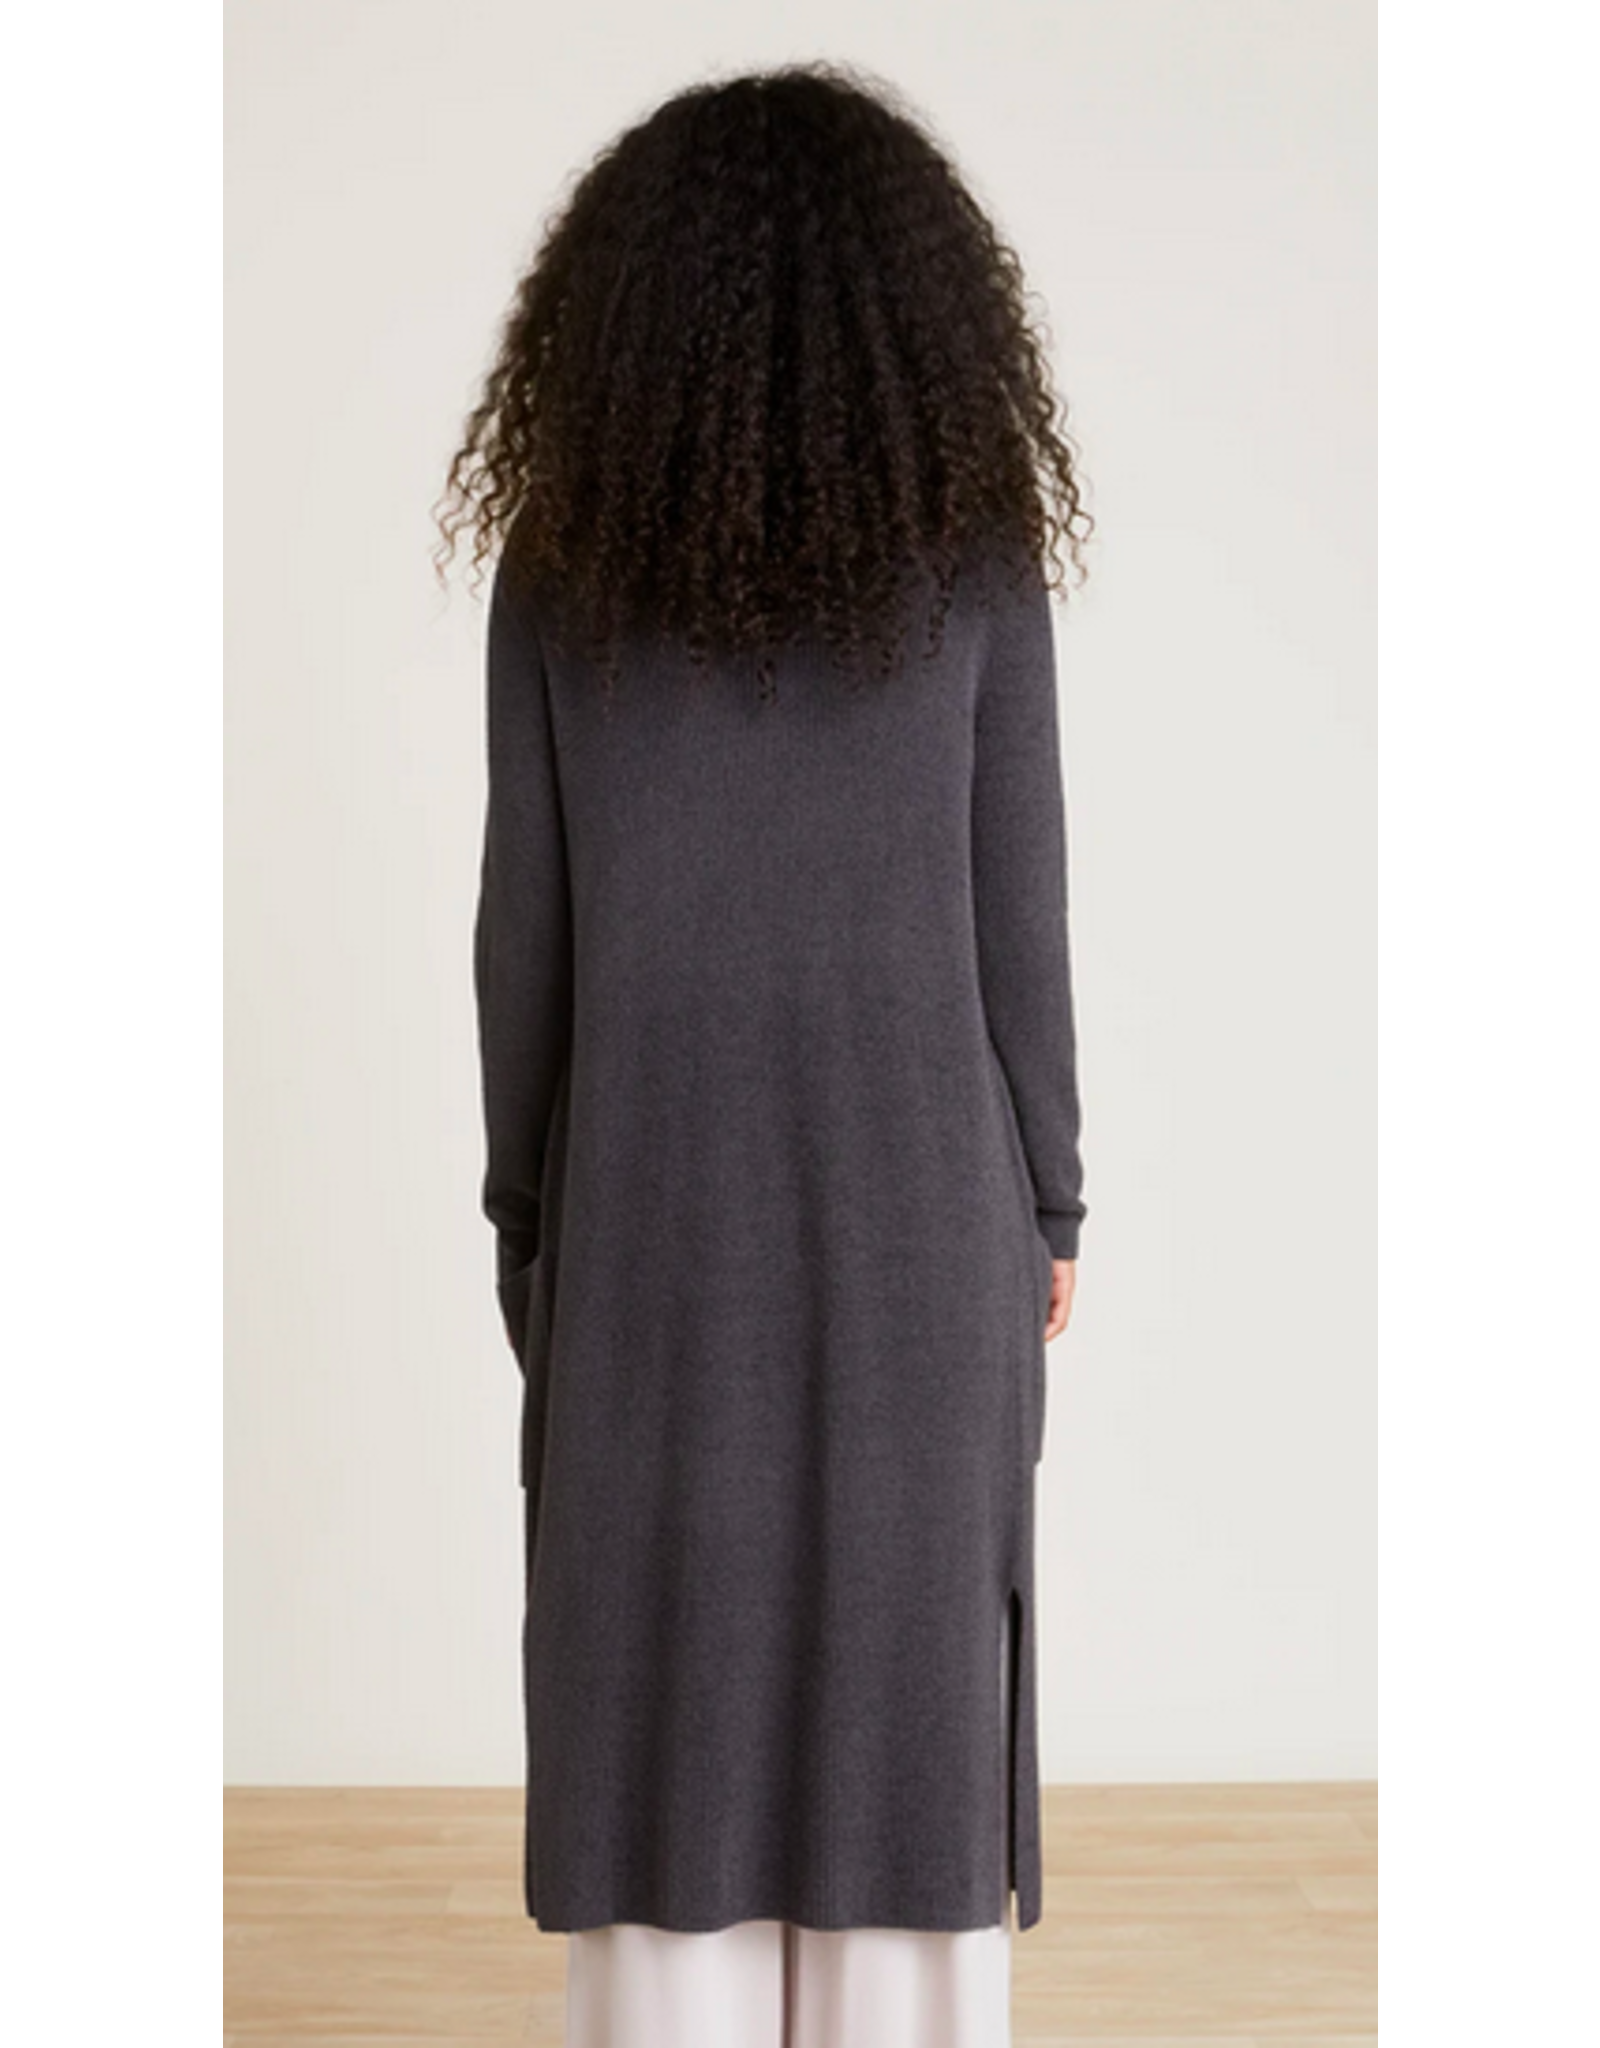 Barefoot Dreams CozyChic Long Cardi in Carbon